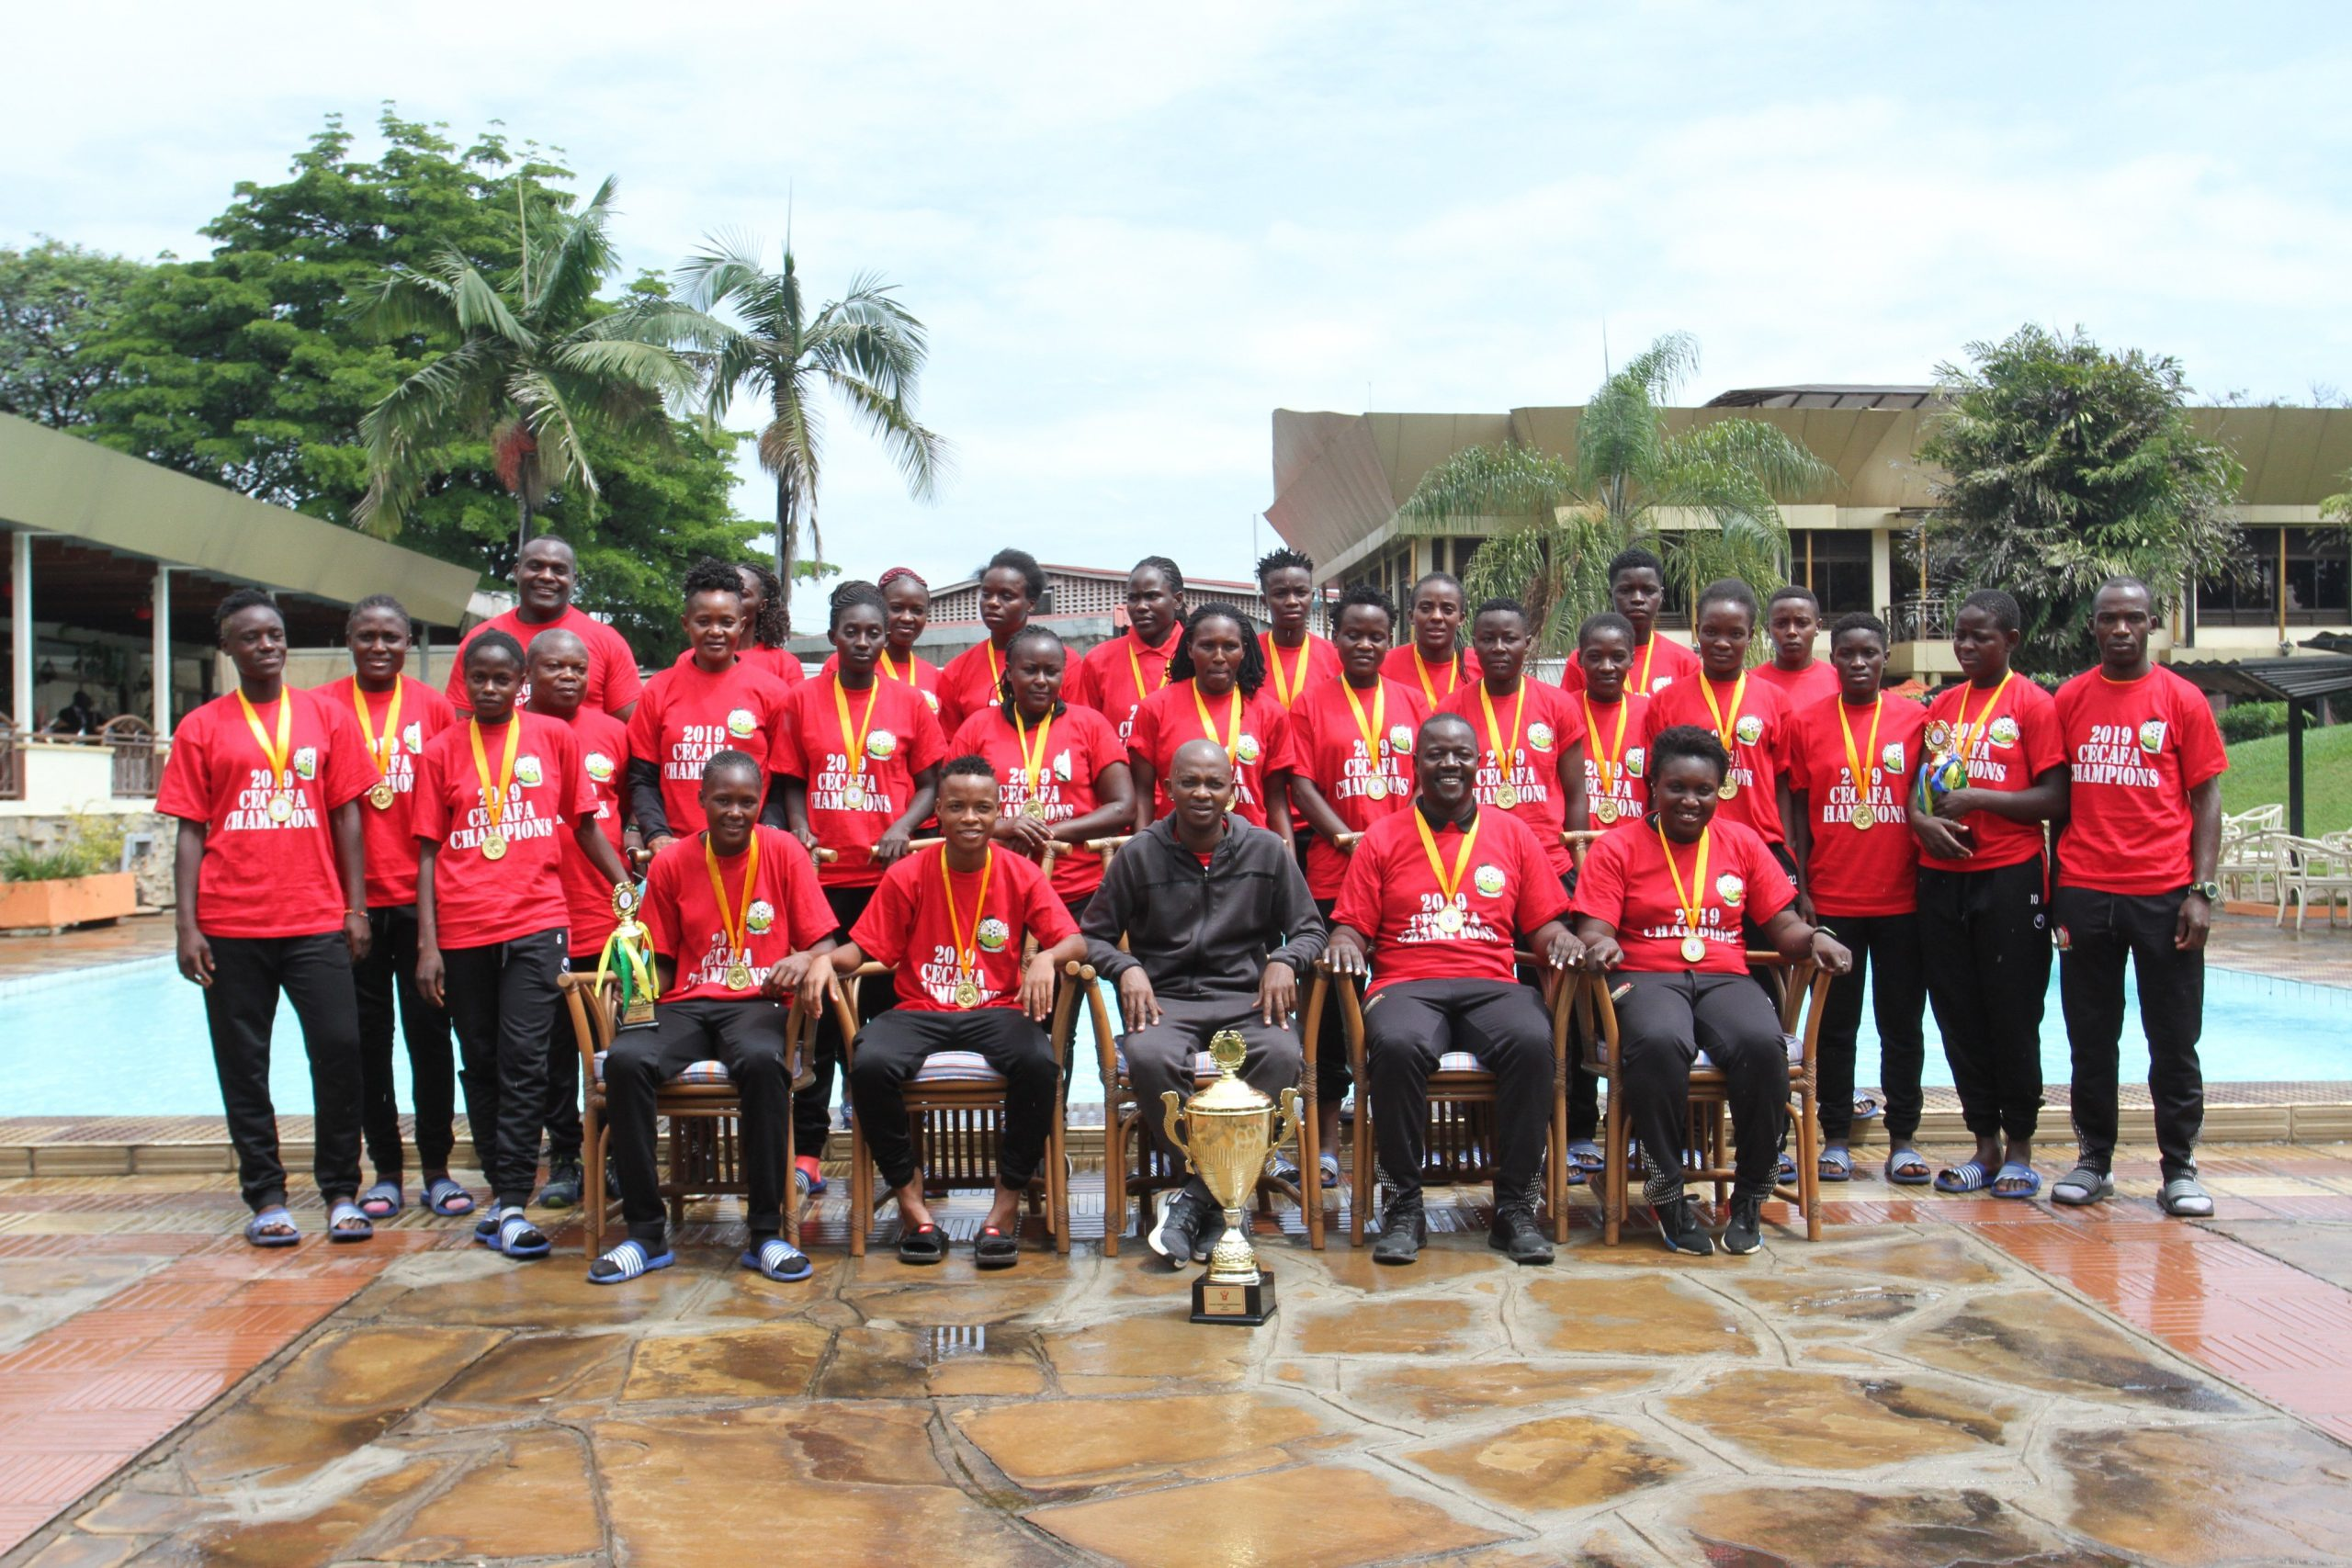 FKF President Nick Mwendwa with the Harambee Starlets squad pose for a picture with the trophy. www.businesstoday.co.ke